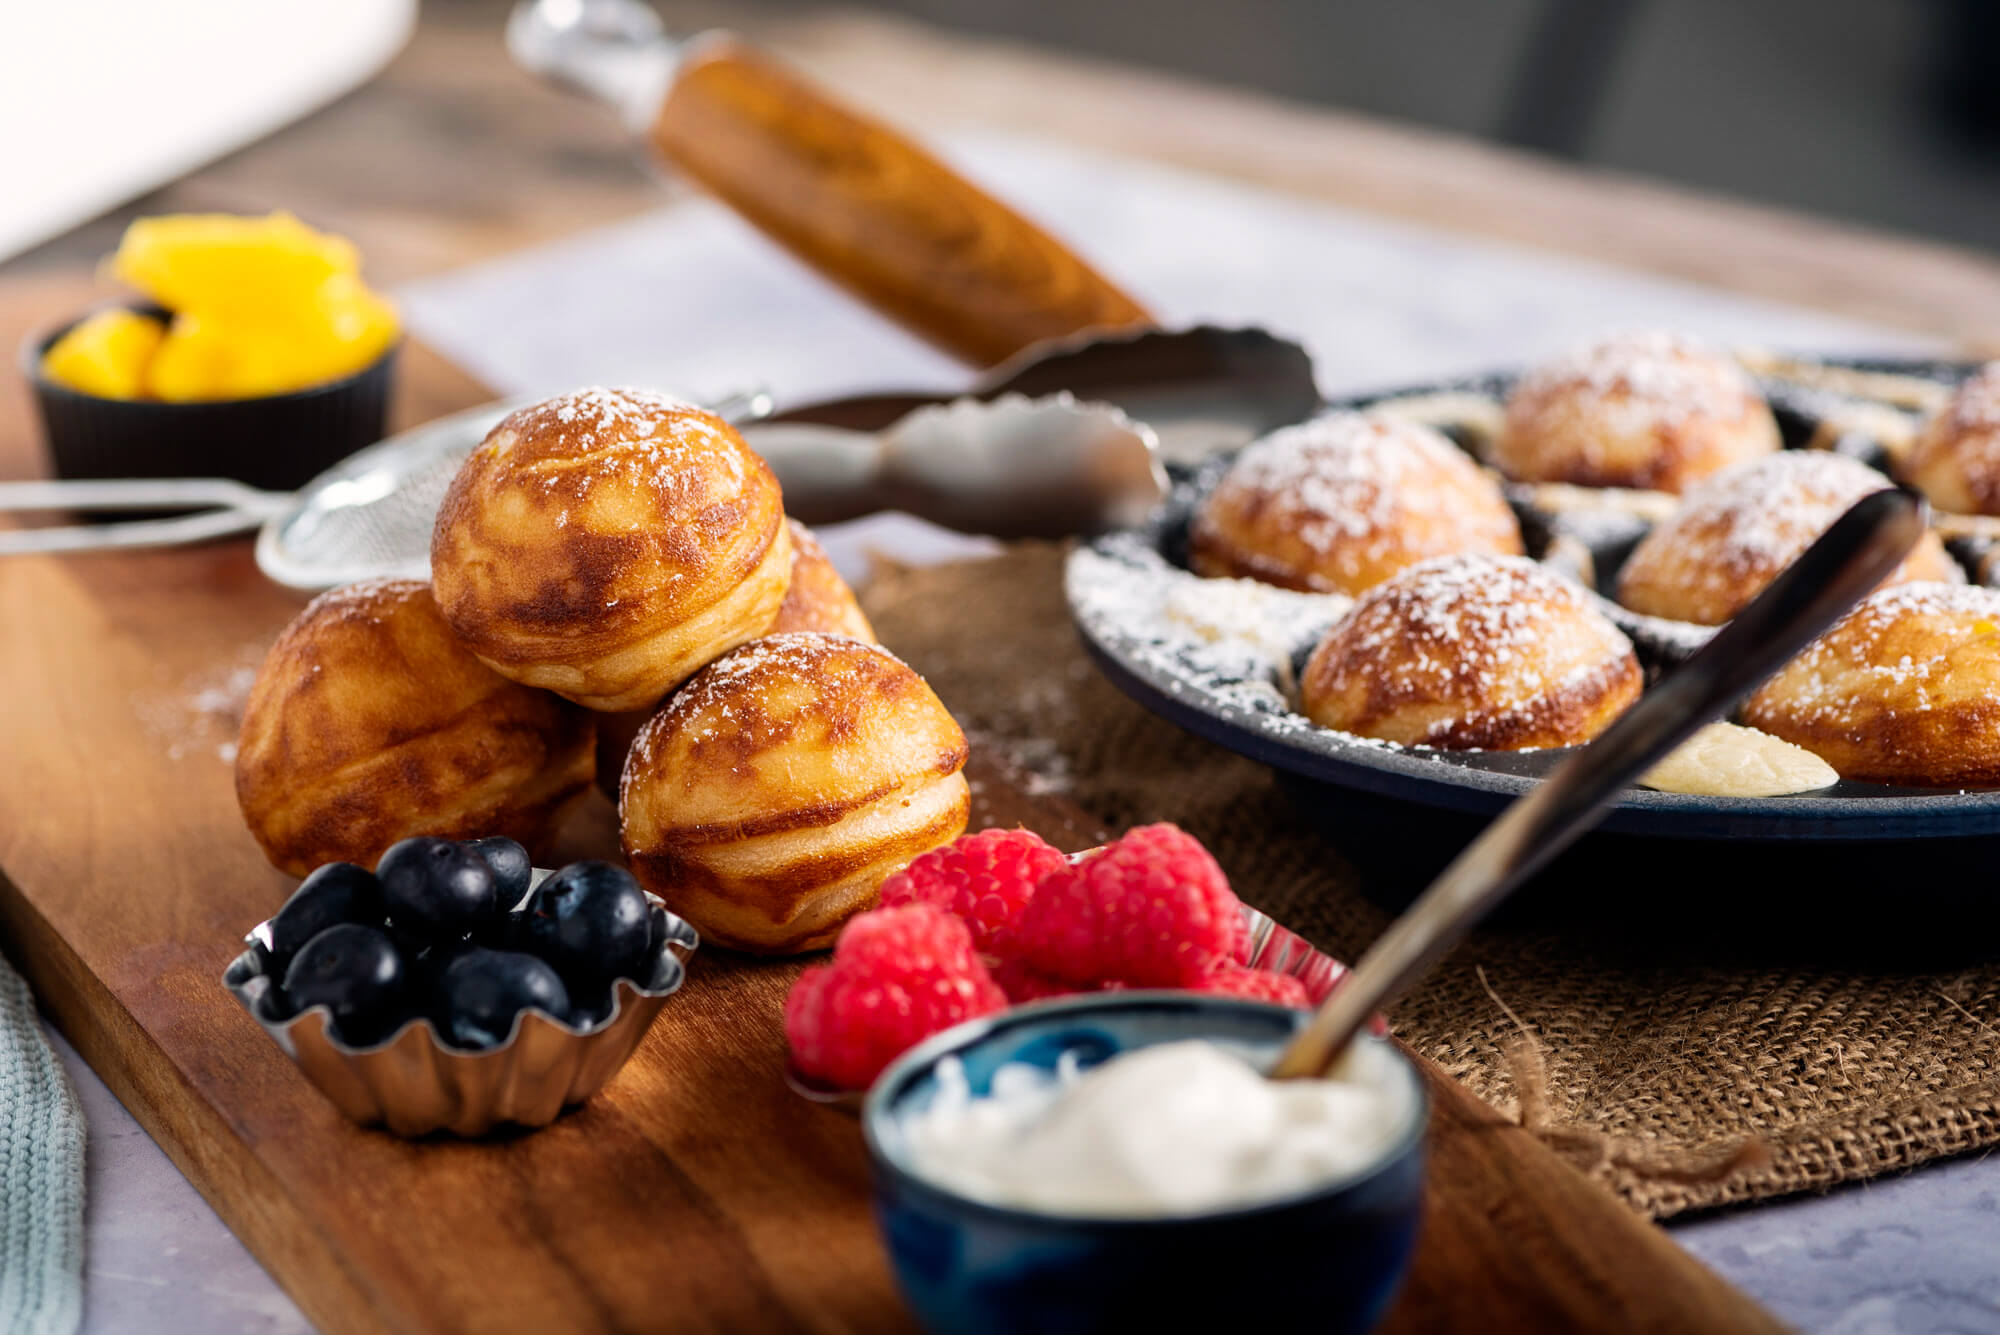 Danish pancake balls topped with powdered sugar and accompanied by a variety of fresh berries.